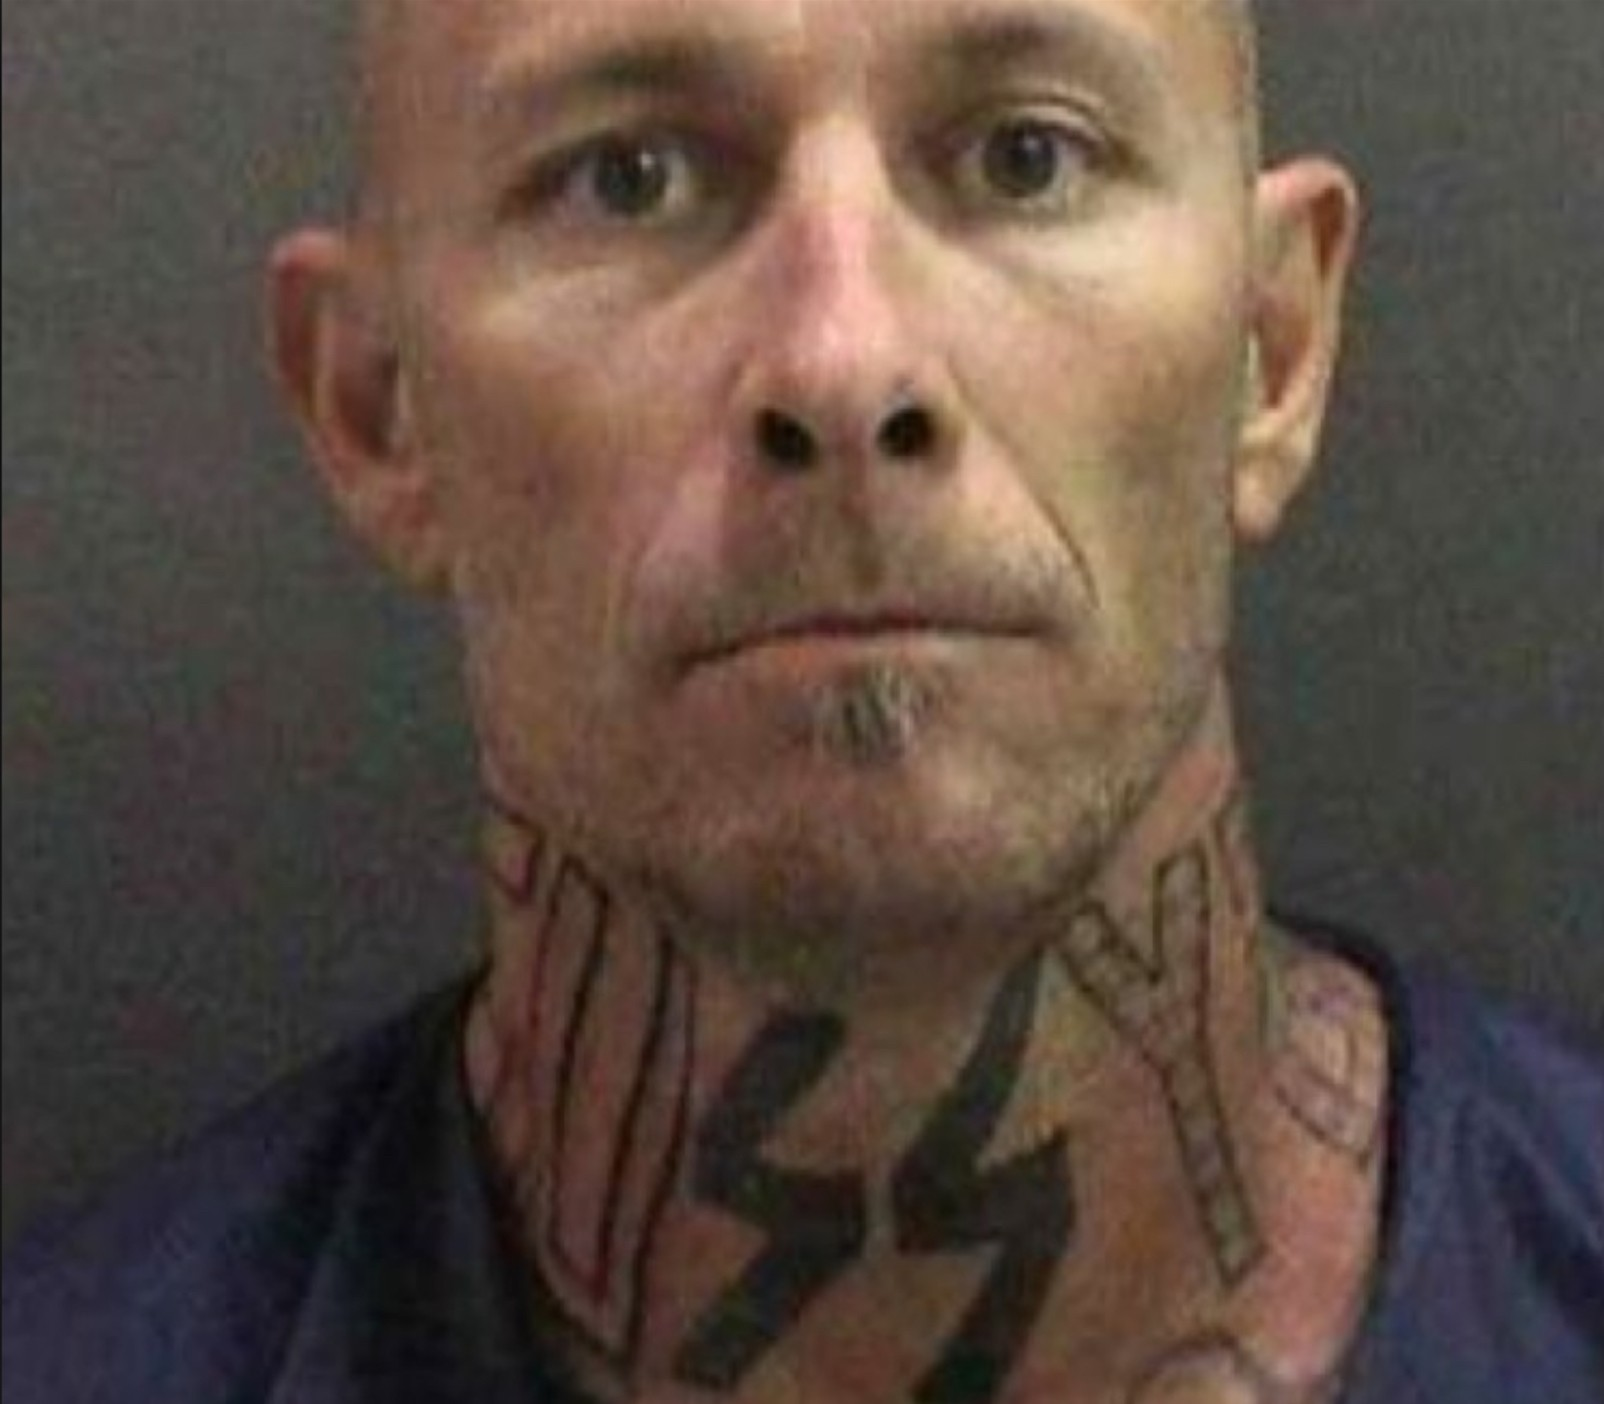 Wrongful Death Trial Begins For Orange County White Supremacist's Stabbing of Iranian American